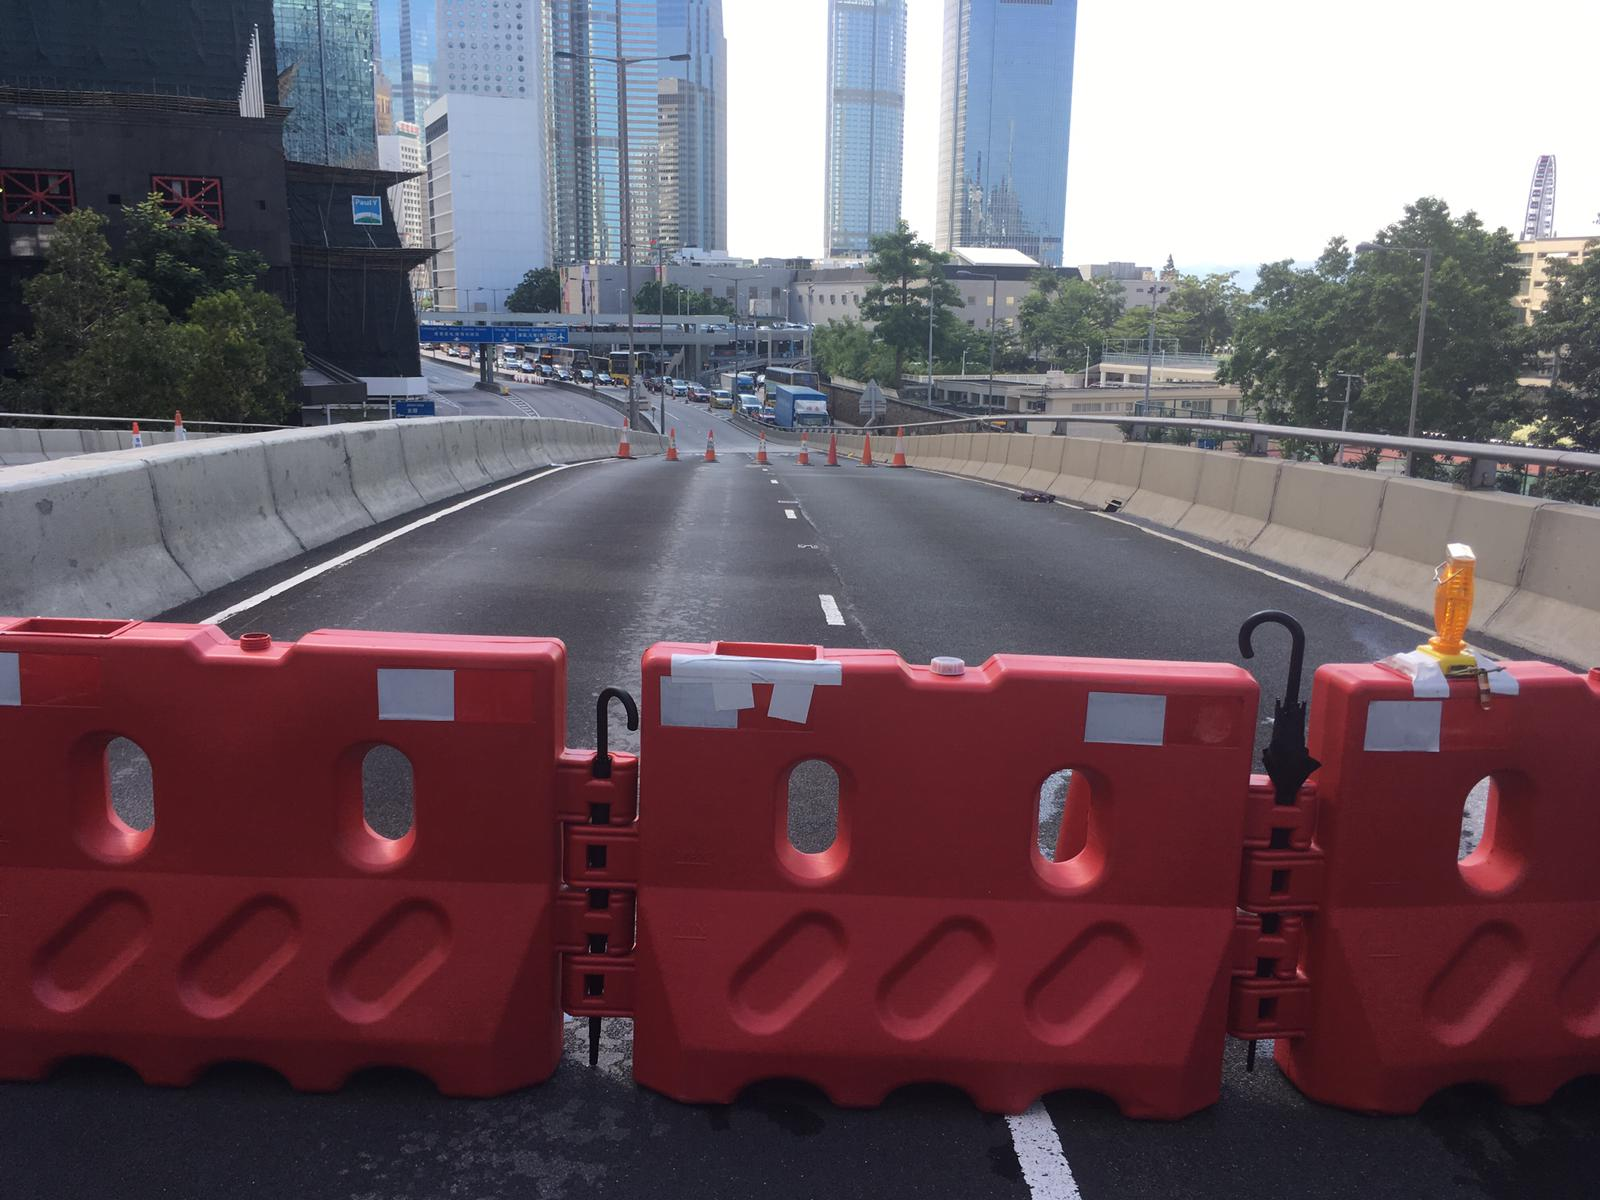 Protesters on Harcourt Road are building road blocks using umbrellas as makeshift joiners.